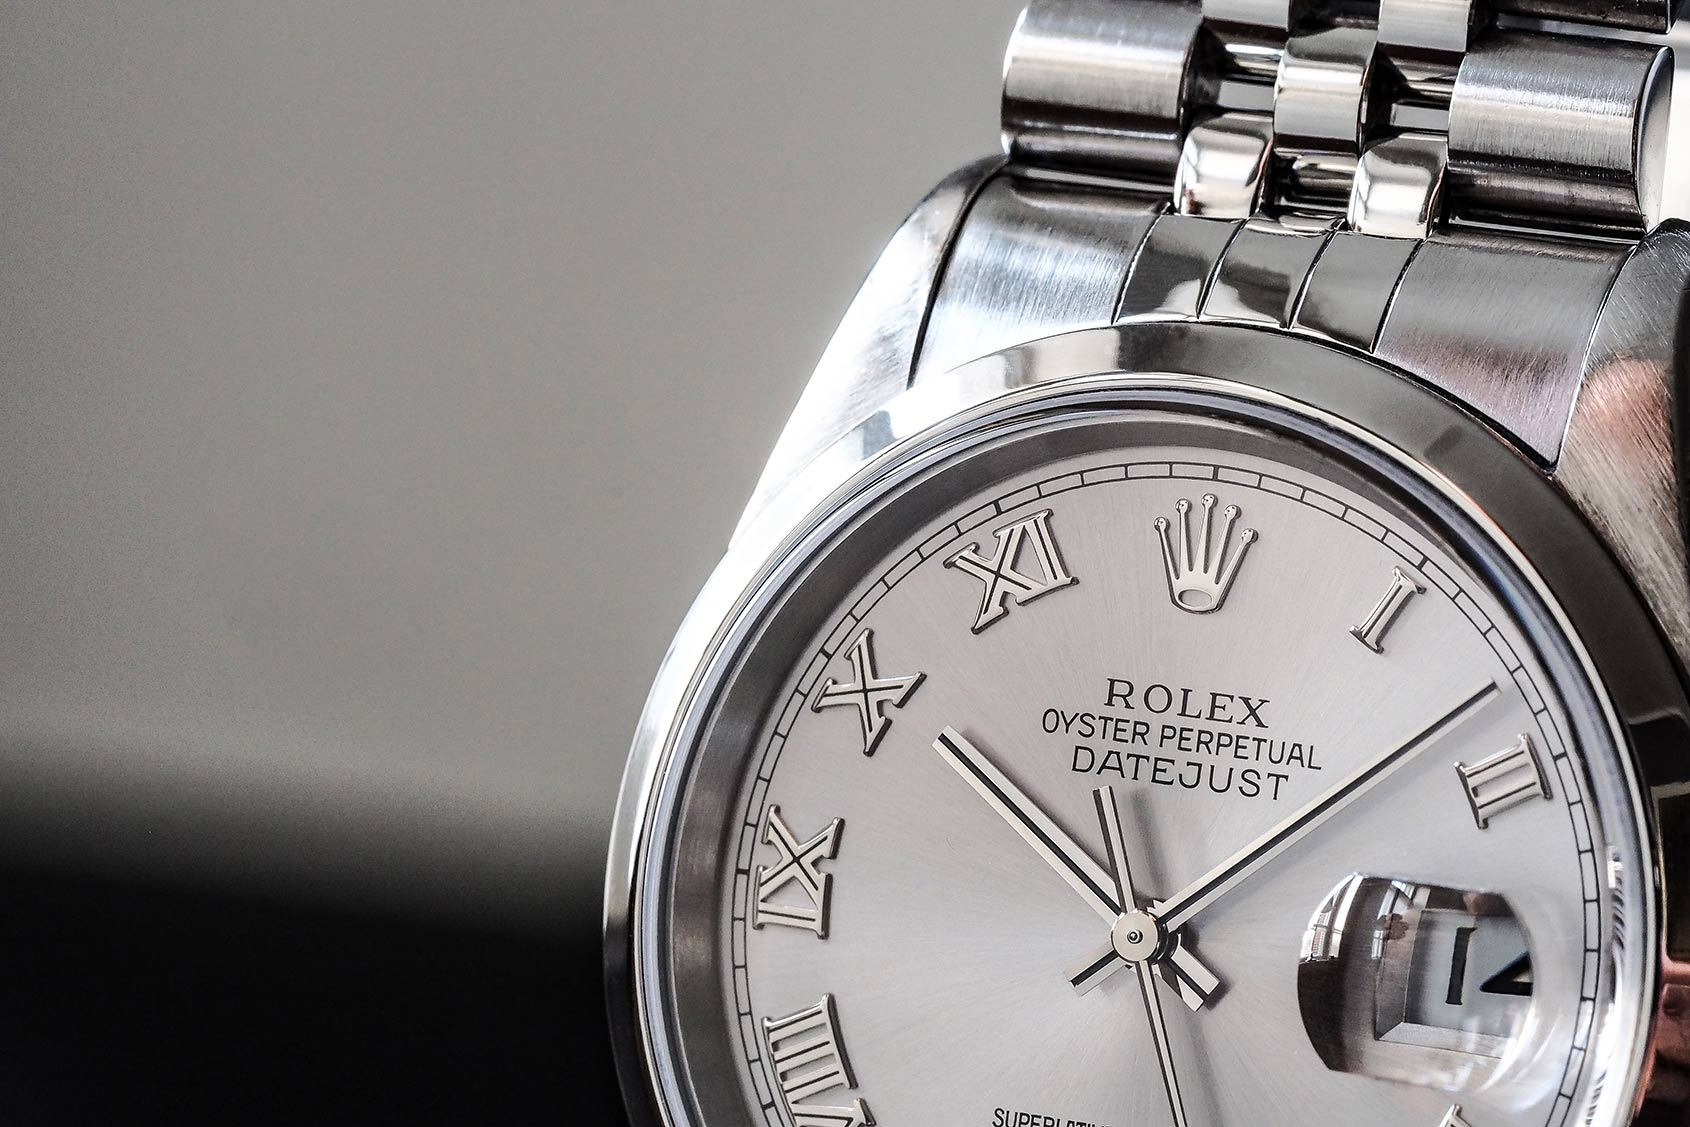 Twenty Four Months With A Rolex Datejust Time And Tide Watches